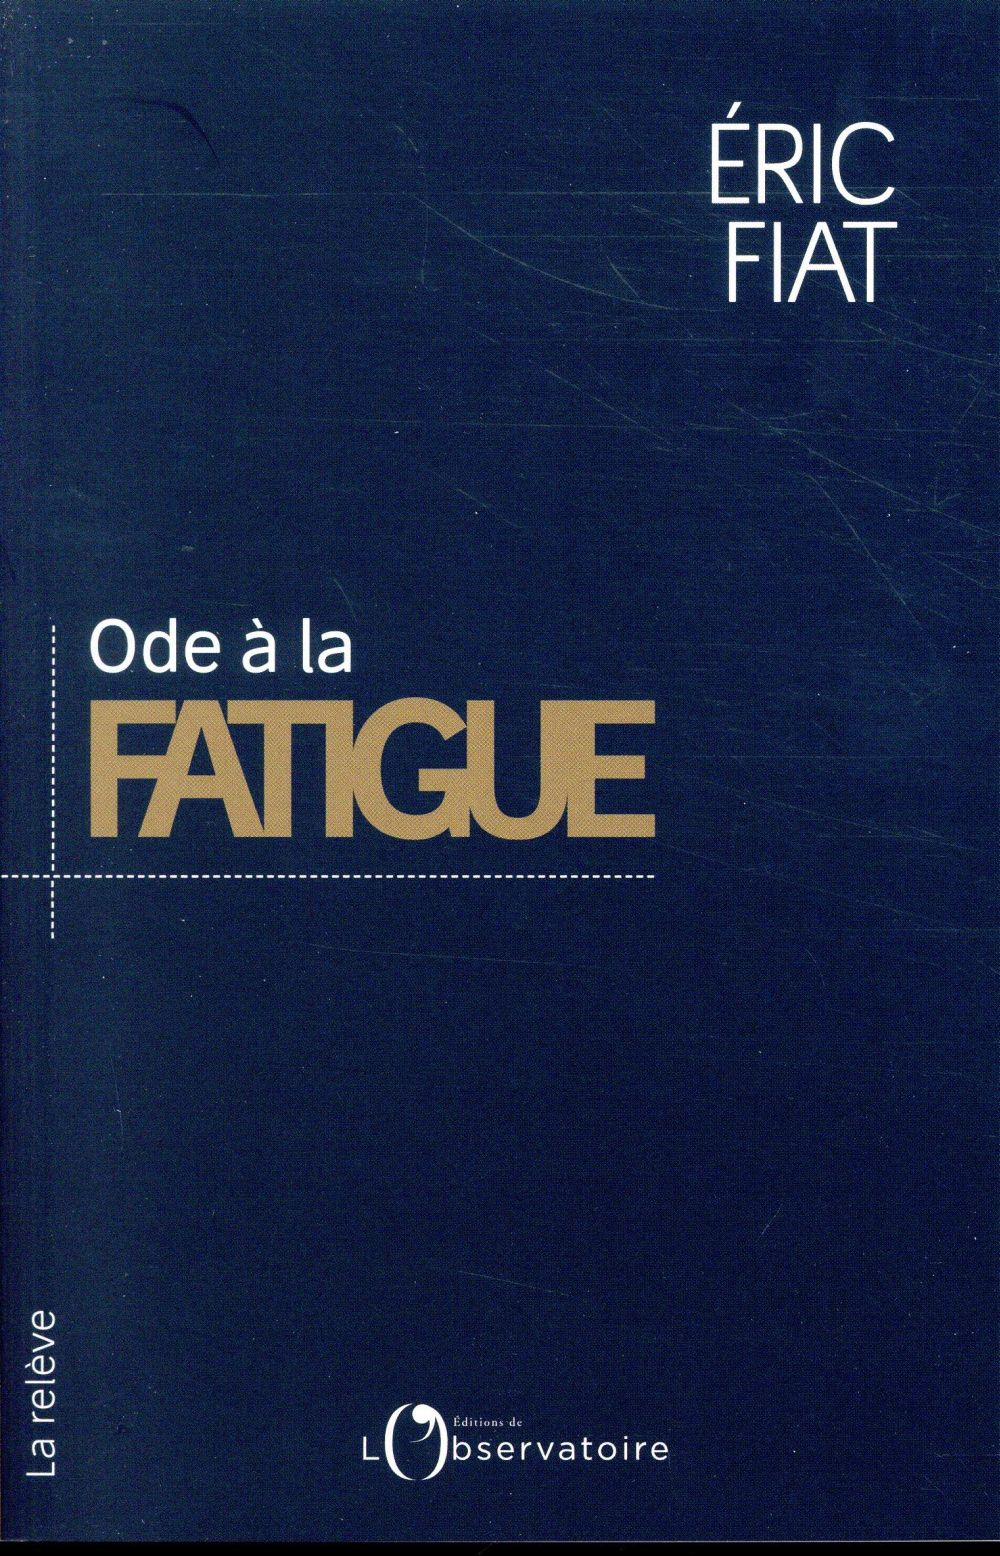 Ode à la fatigue